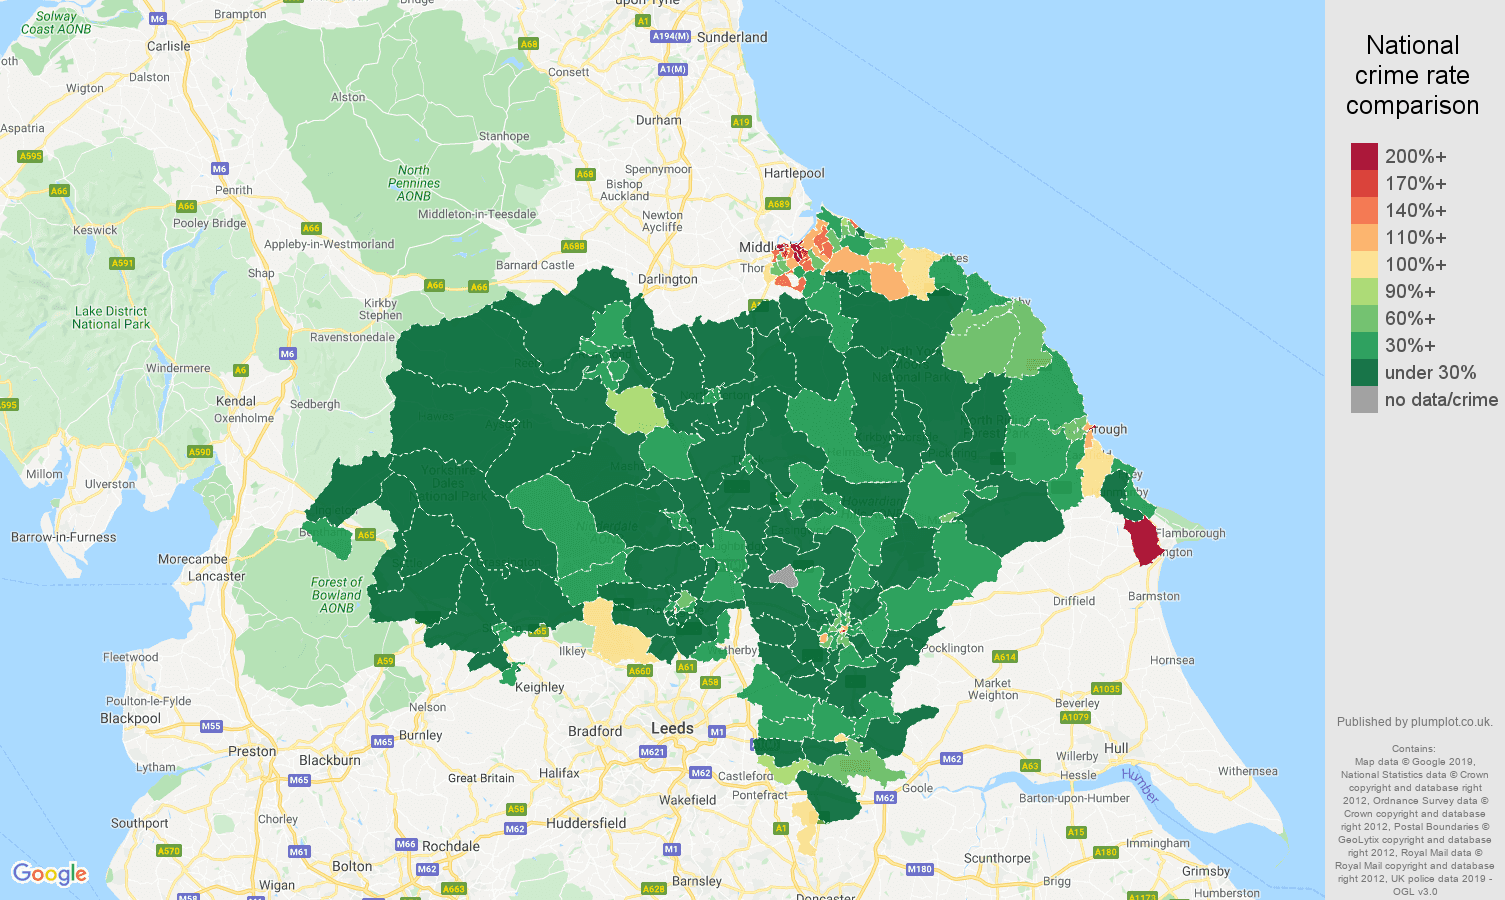 North Yorkshire public order crime rate comparison map